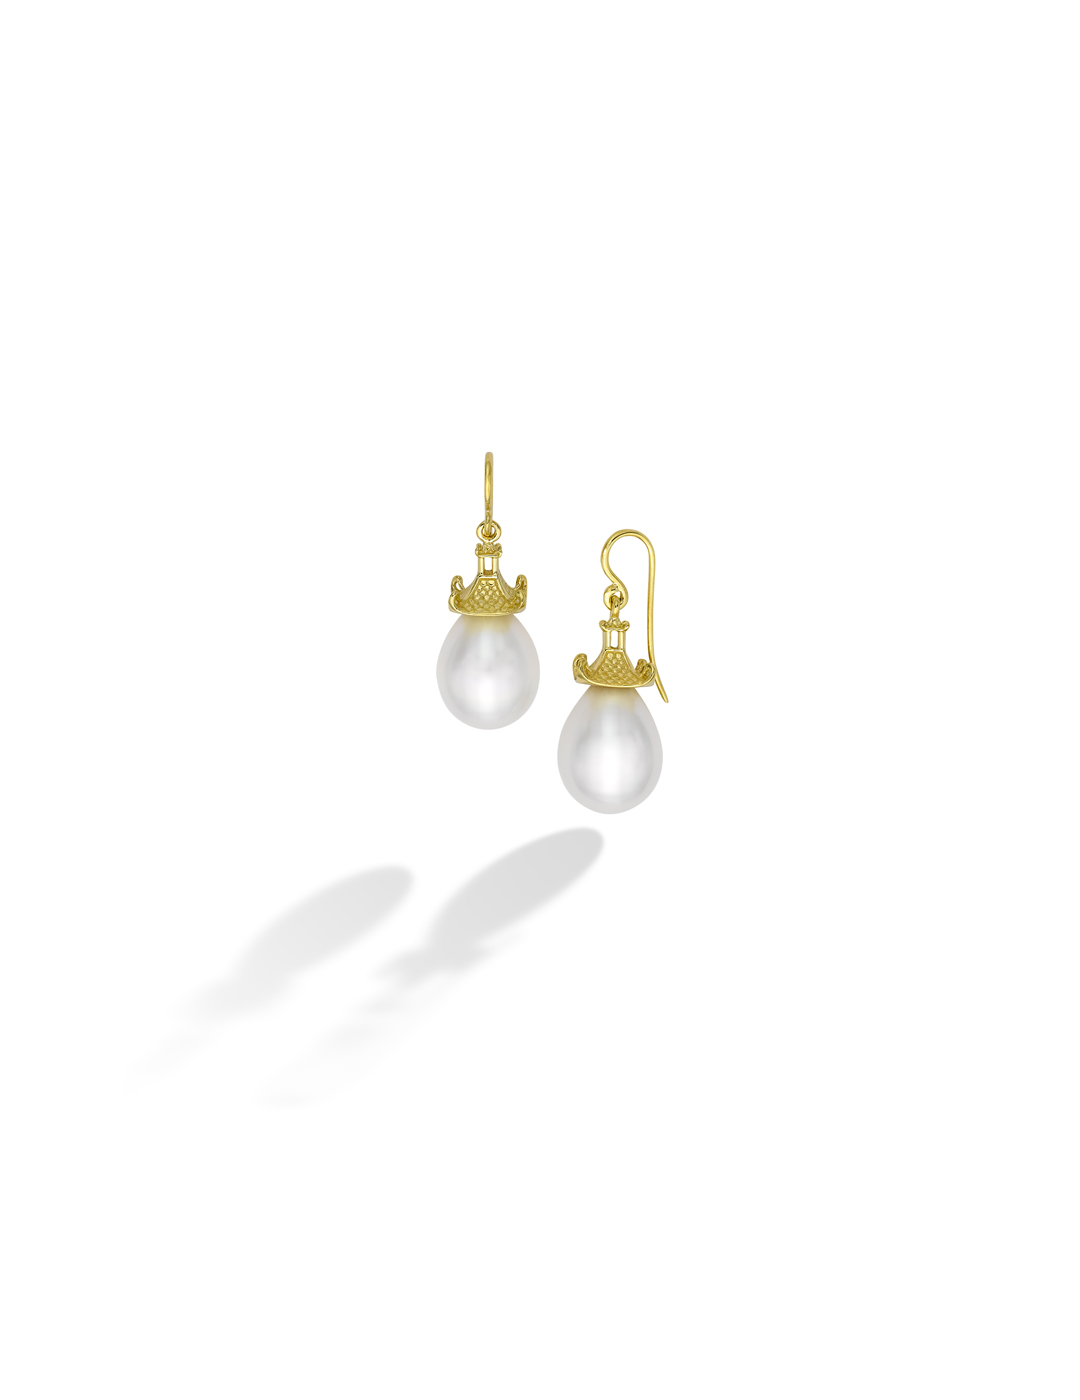 mish_products_earrings_Pagoda-White SS Prl-ER-1